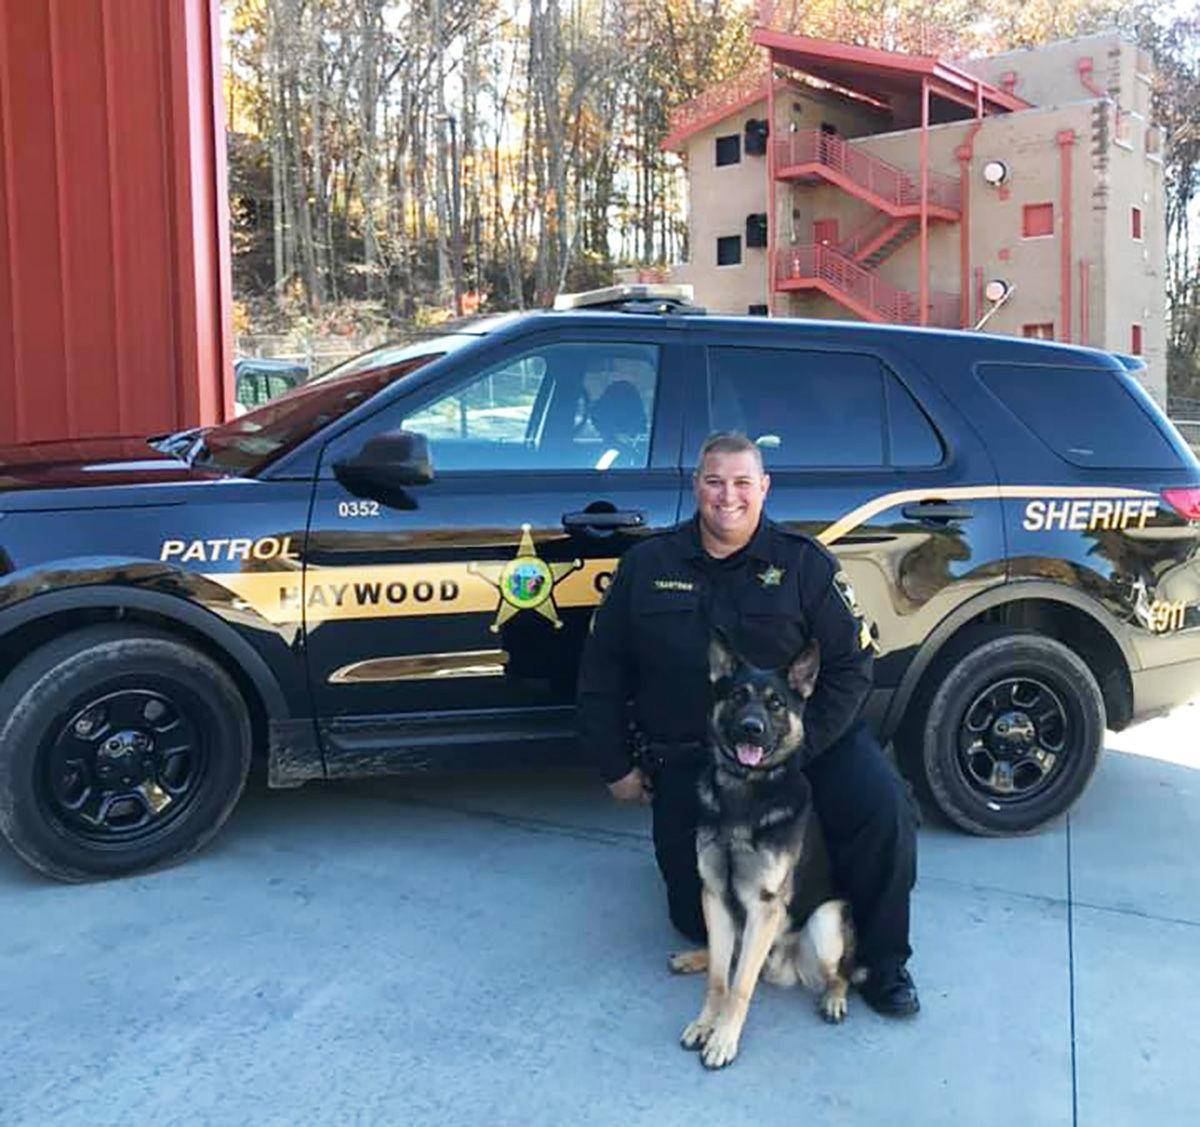 Sgt. Matthew Trantham and K9 Kilo